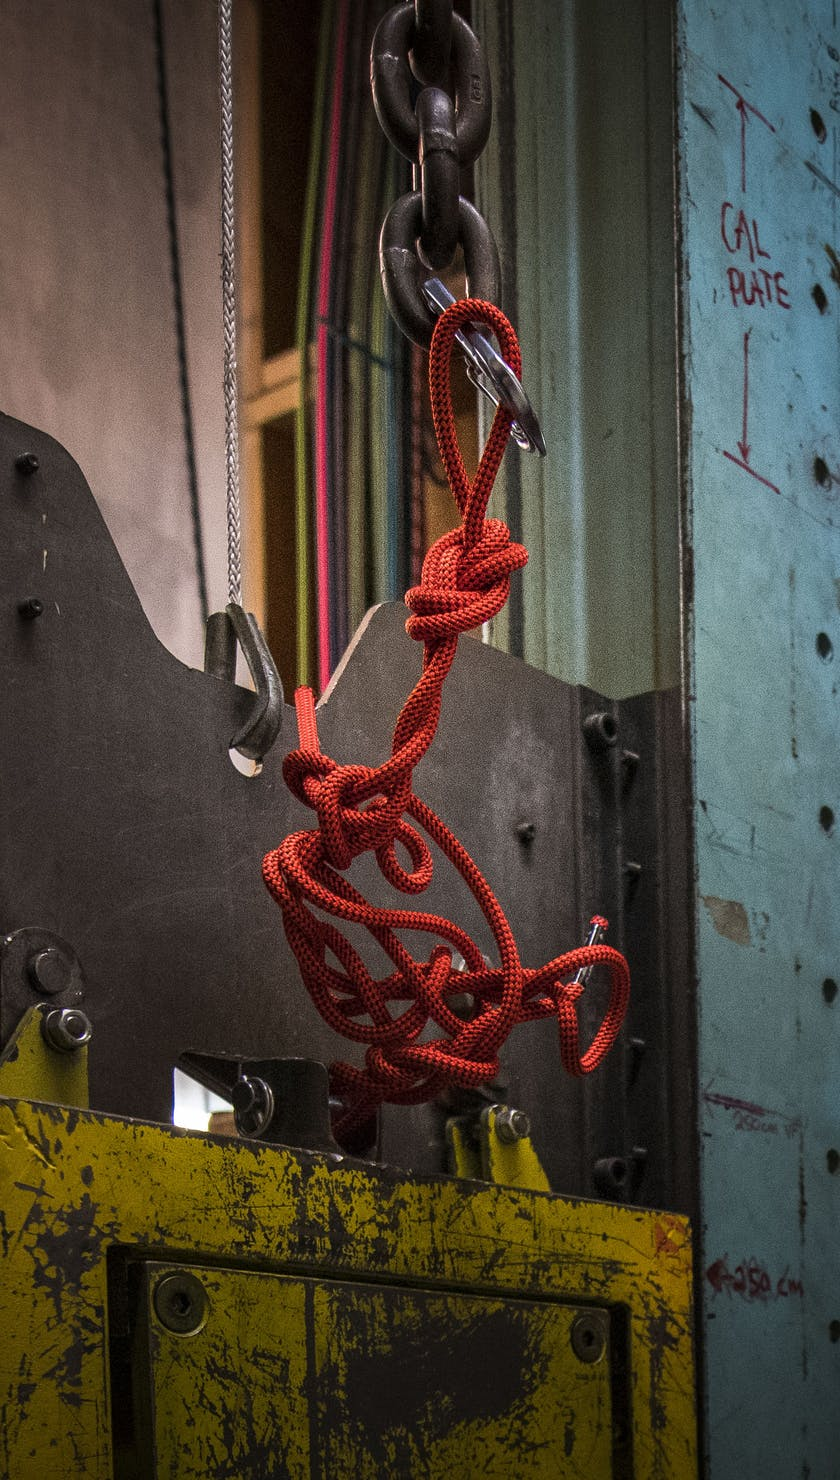 Twisted Climbing Rope